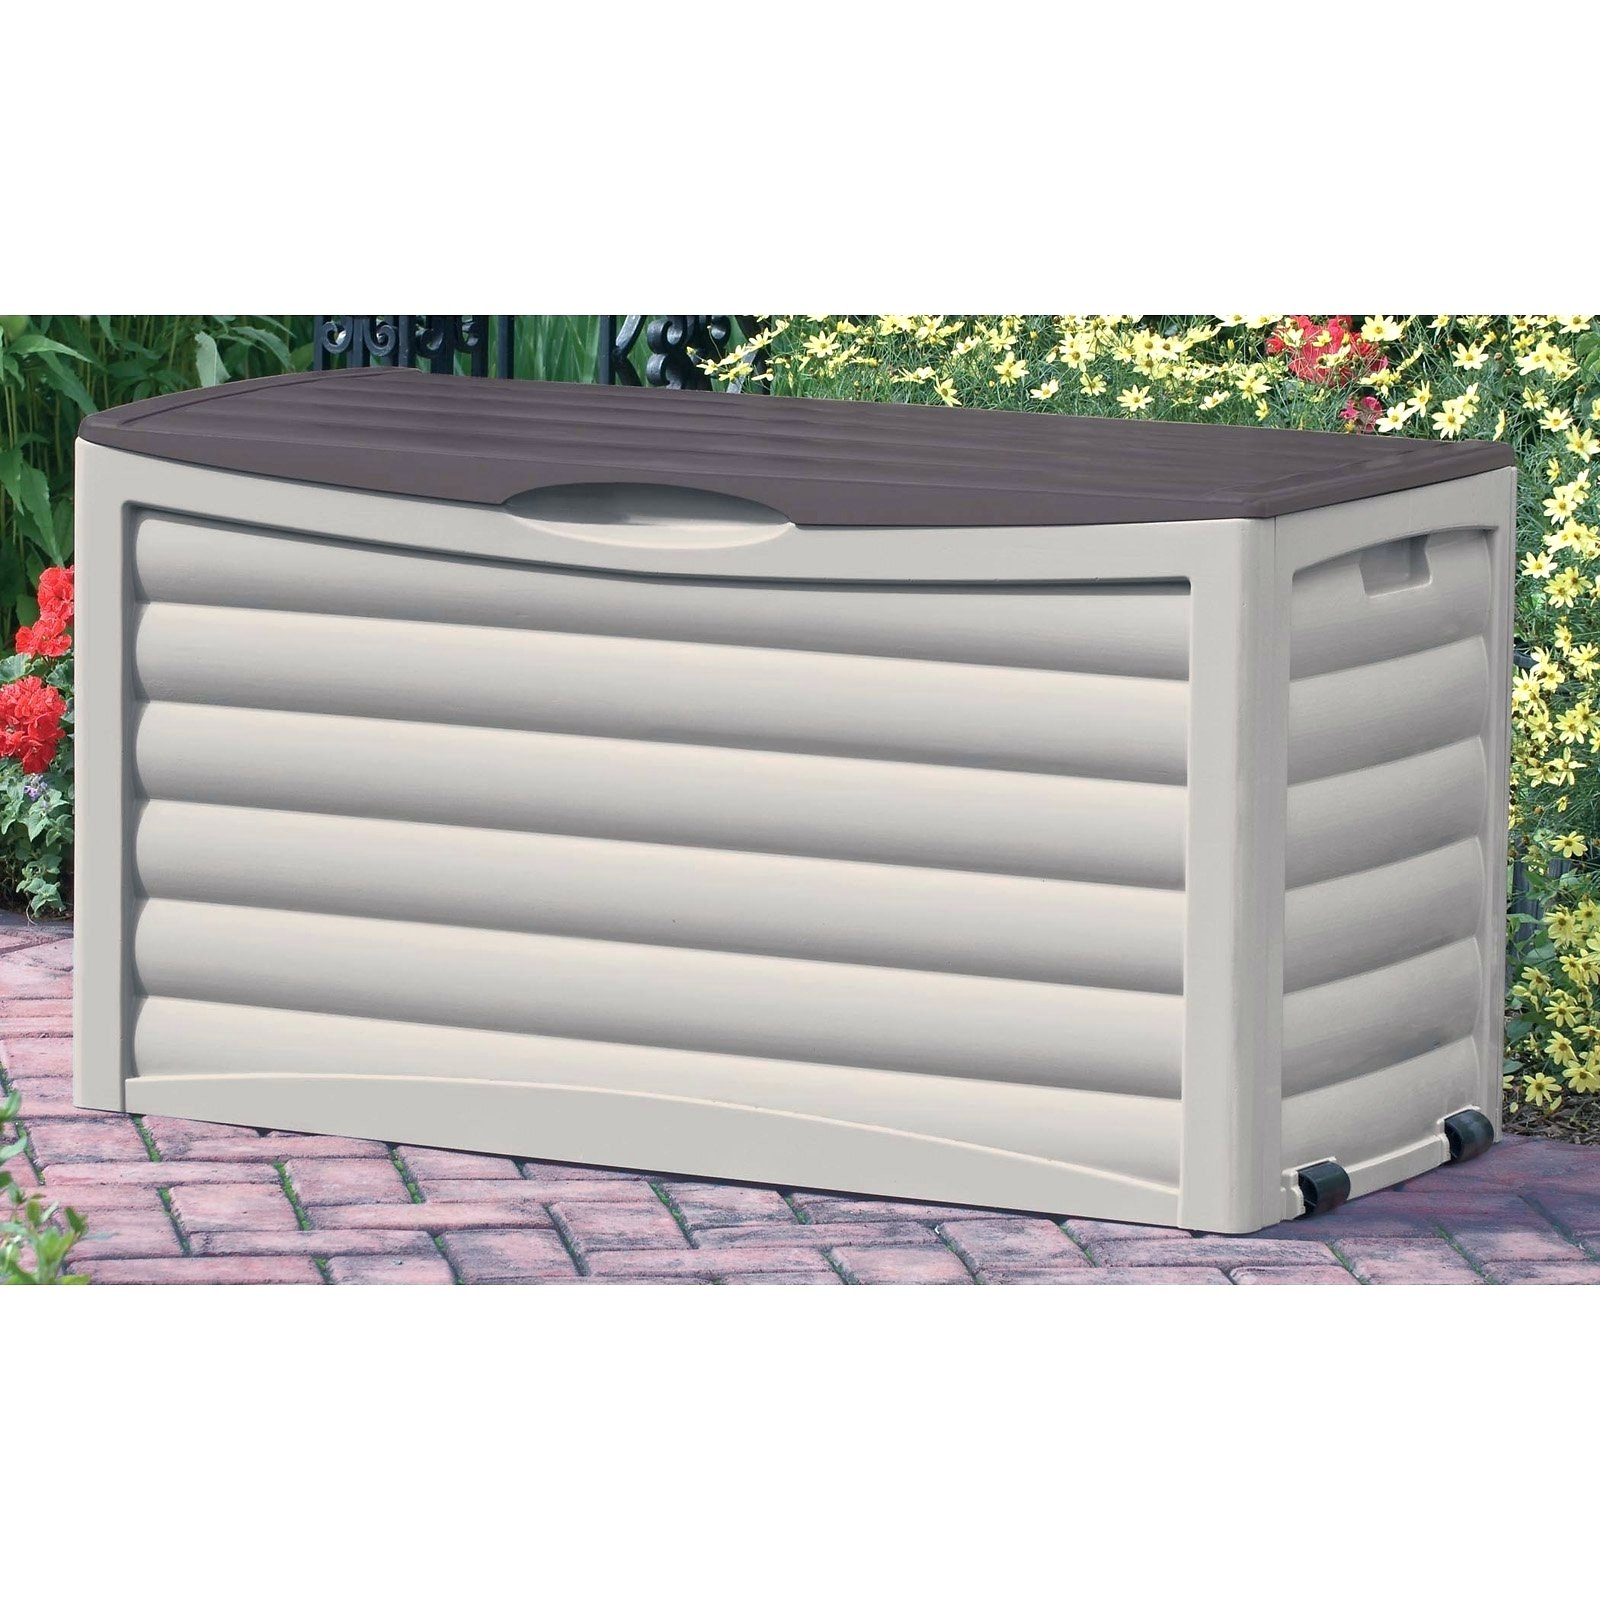 Extra Large Deck Box | Wooden Deck Box | Rubbermaid Storage Bench